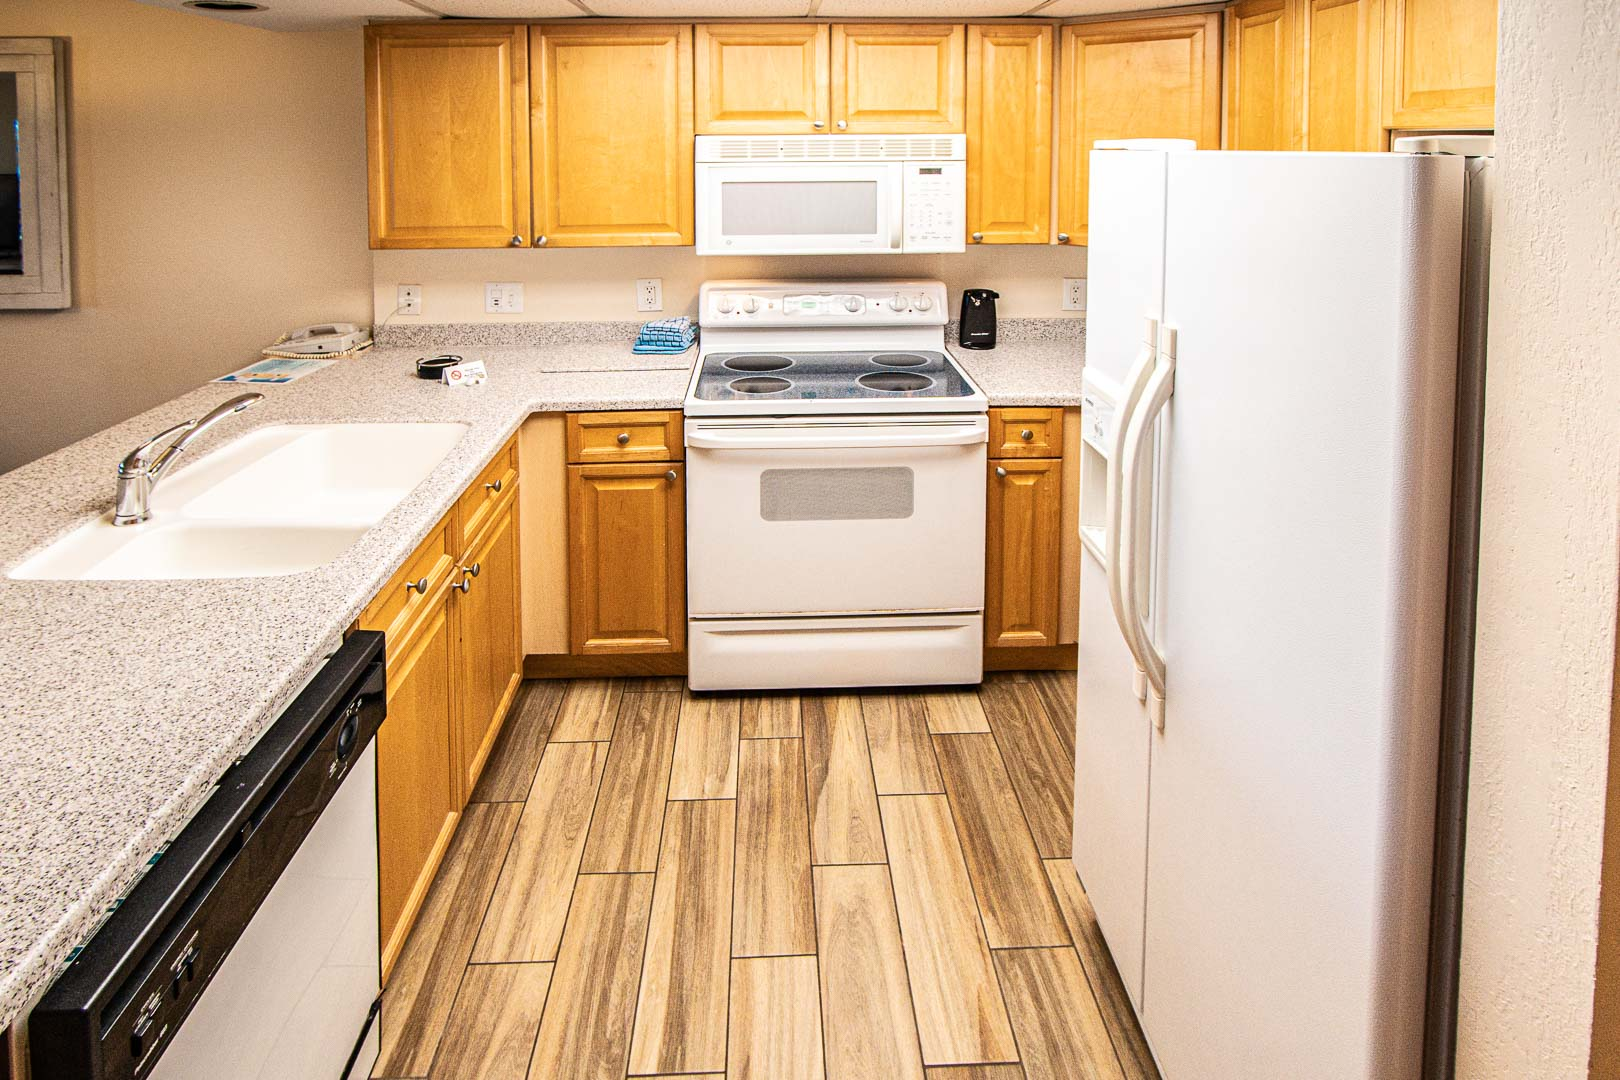 A fully equipped kitchen area at VRI's Bay Club of Sandestin in Florida.